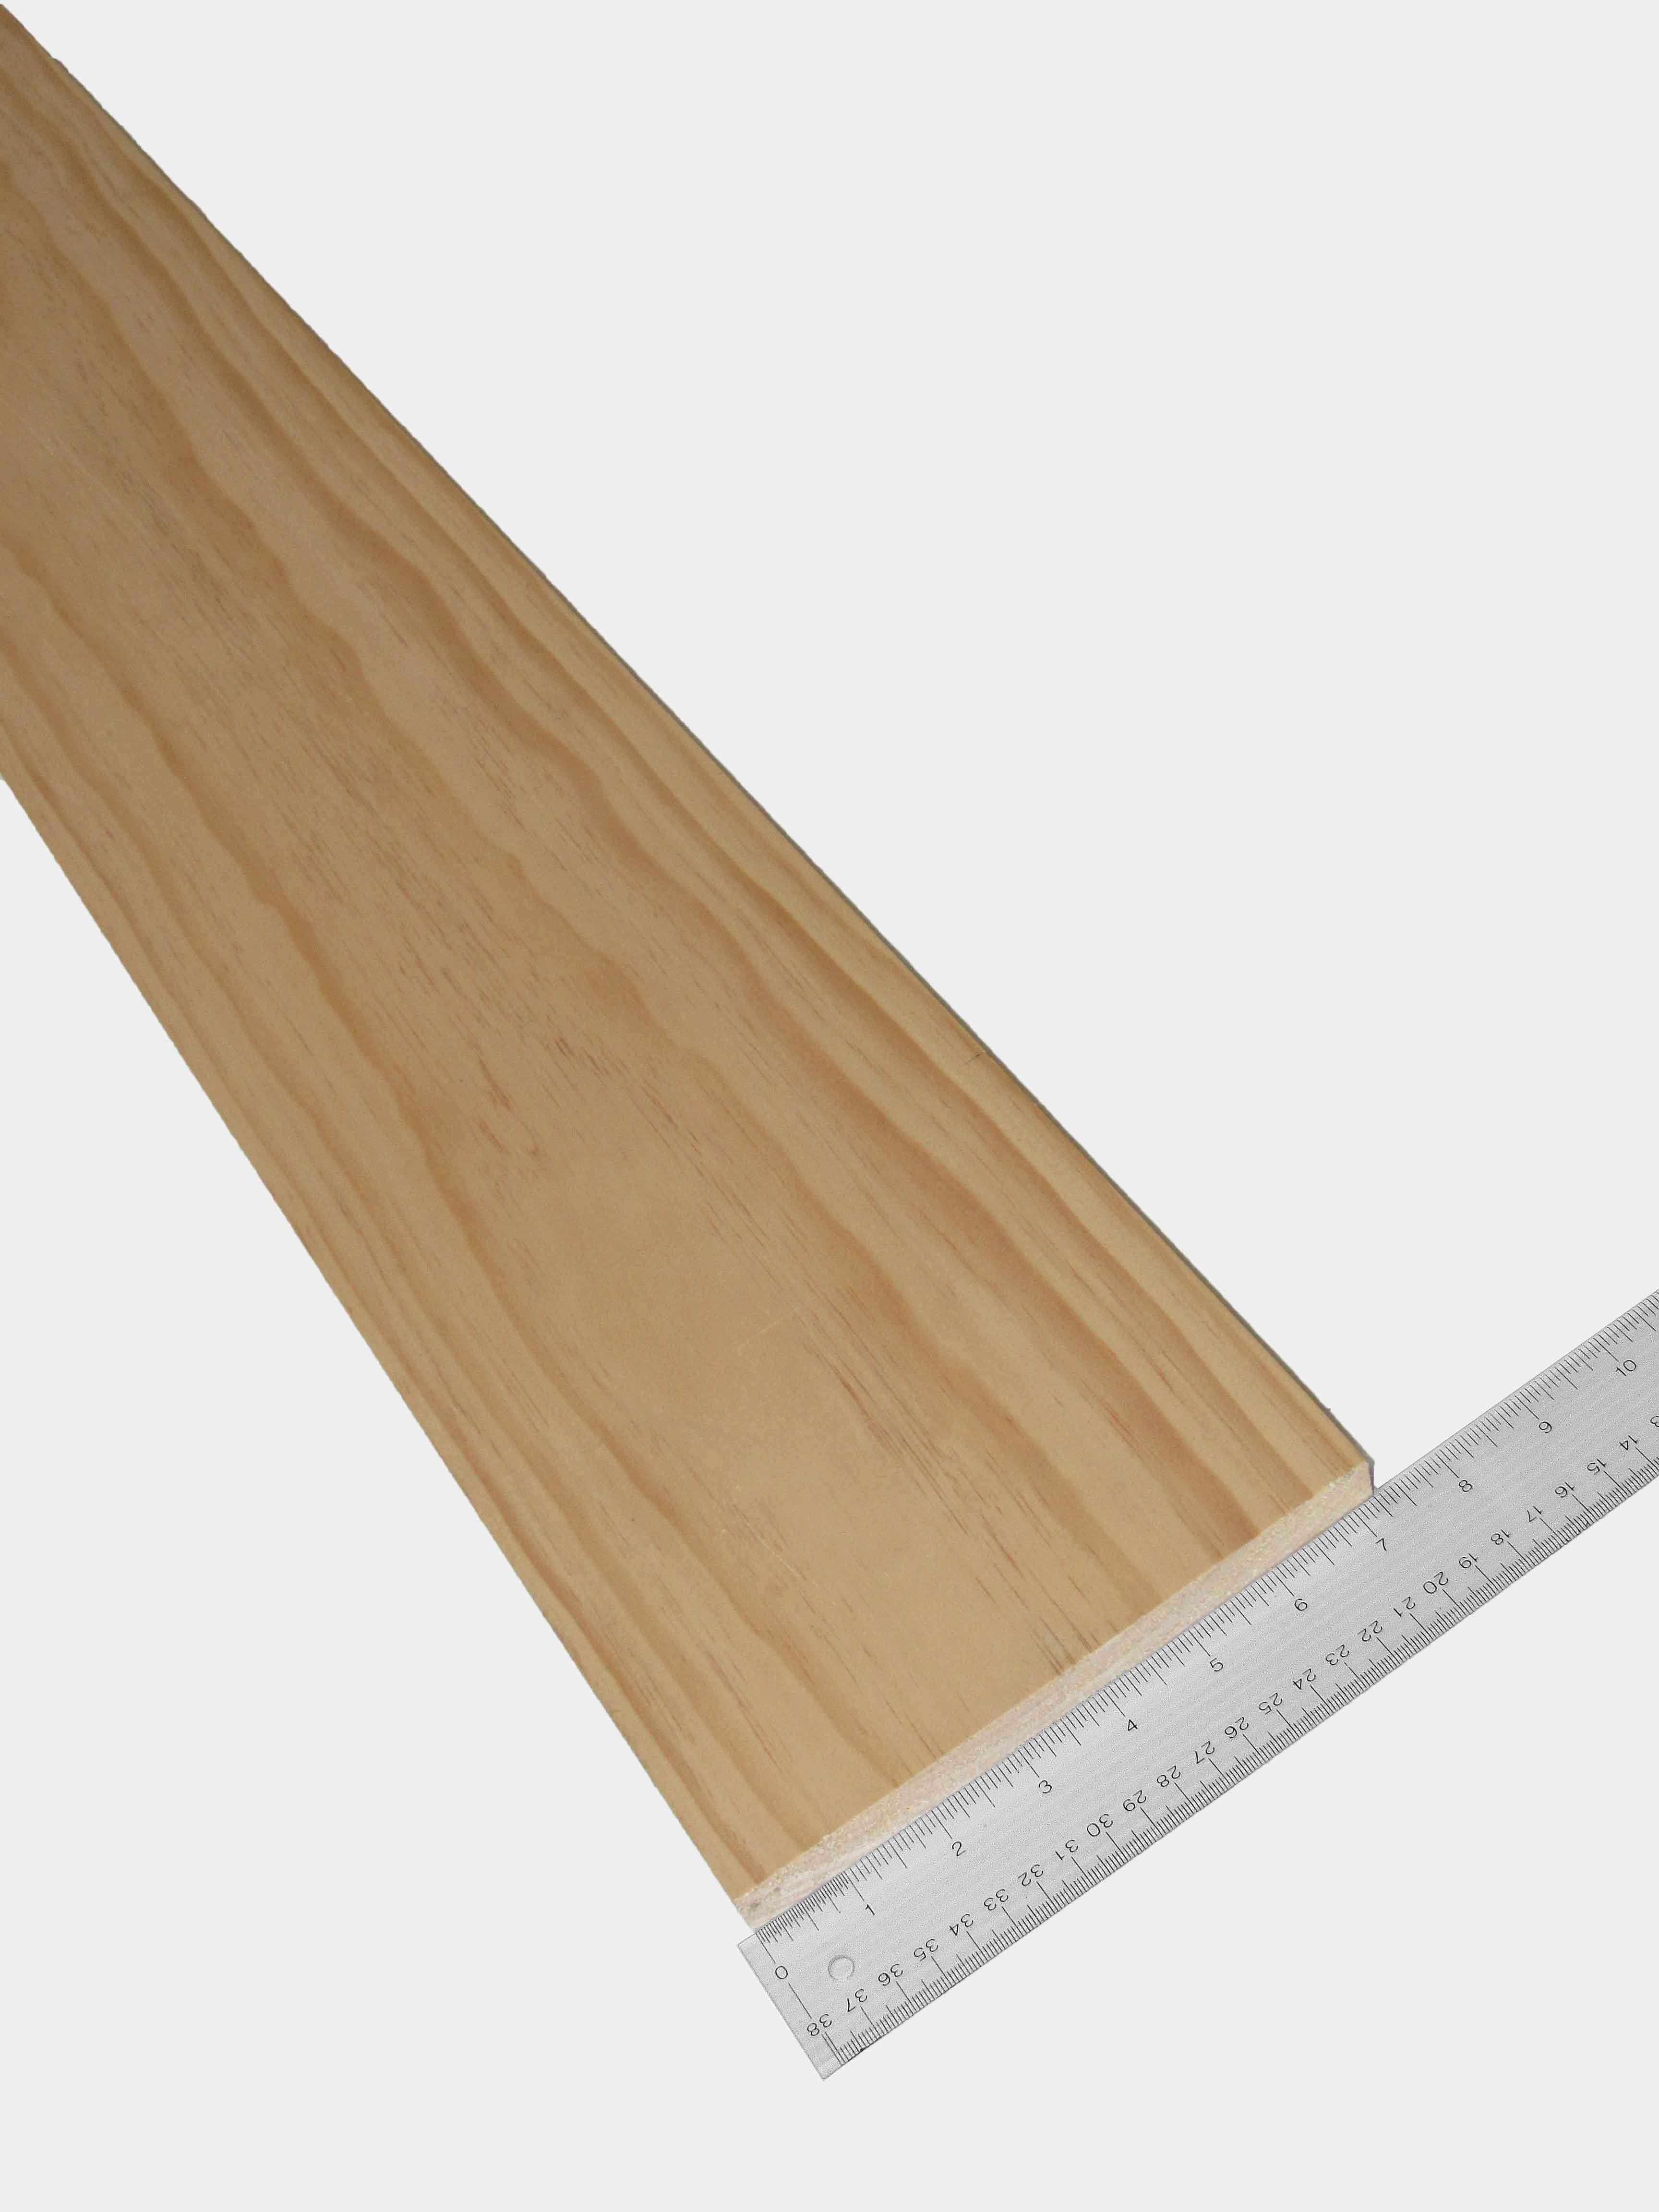 1x8 Clear White Pine Lumber S4s Capitol City Lumber